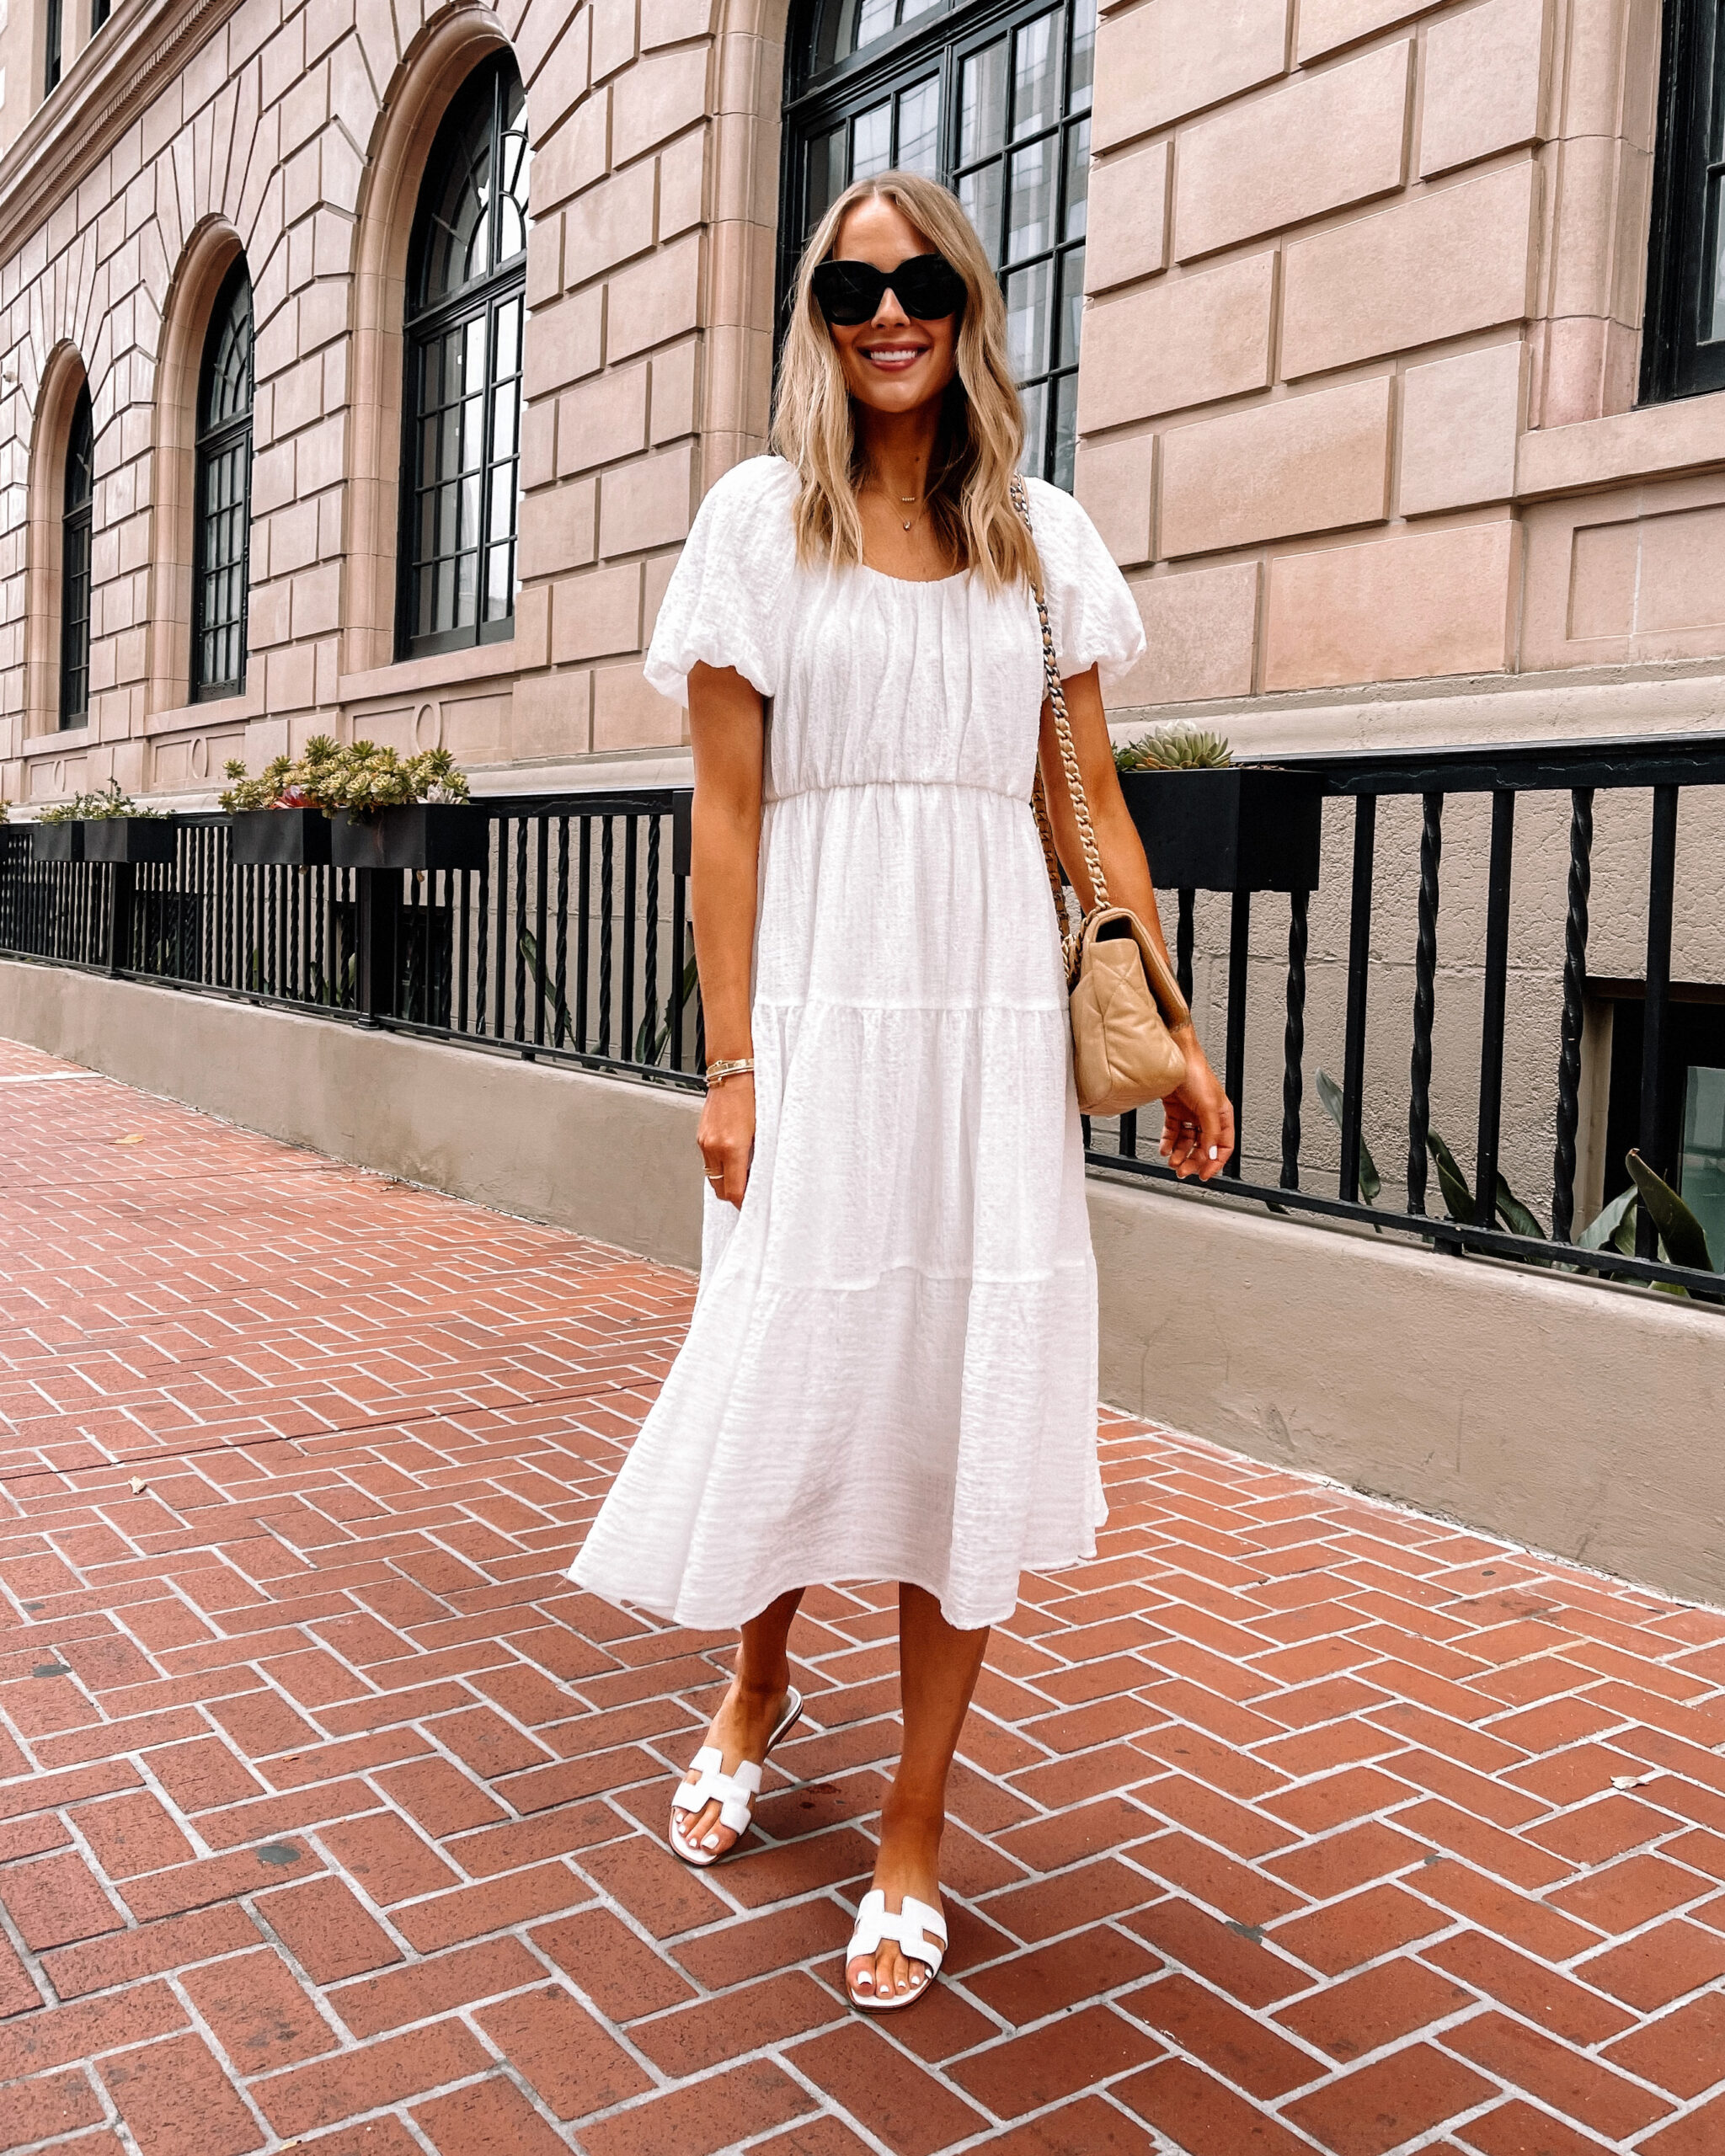 Fashion Jackson Wearing Nordstrom White Midi Dress White Hermes Sandals Summer Outfit